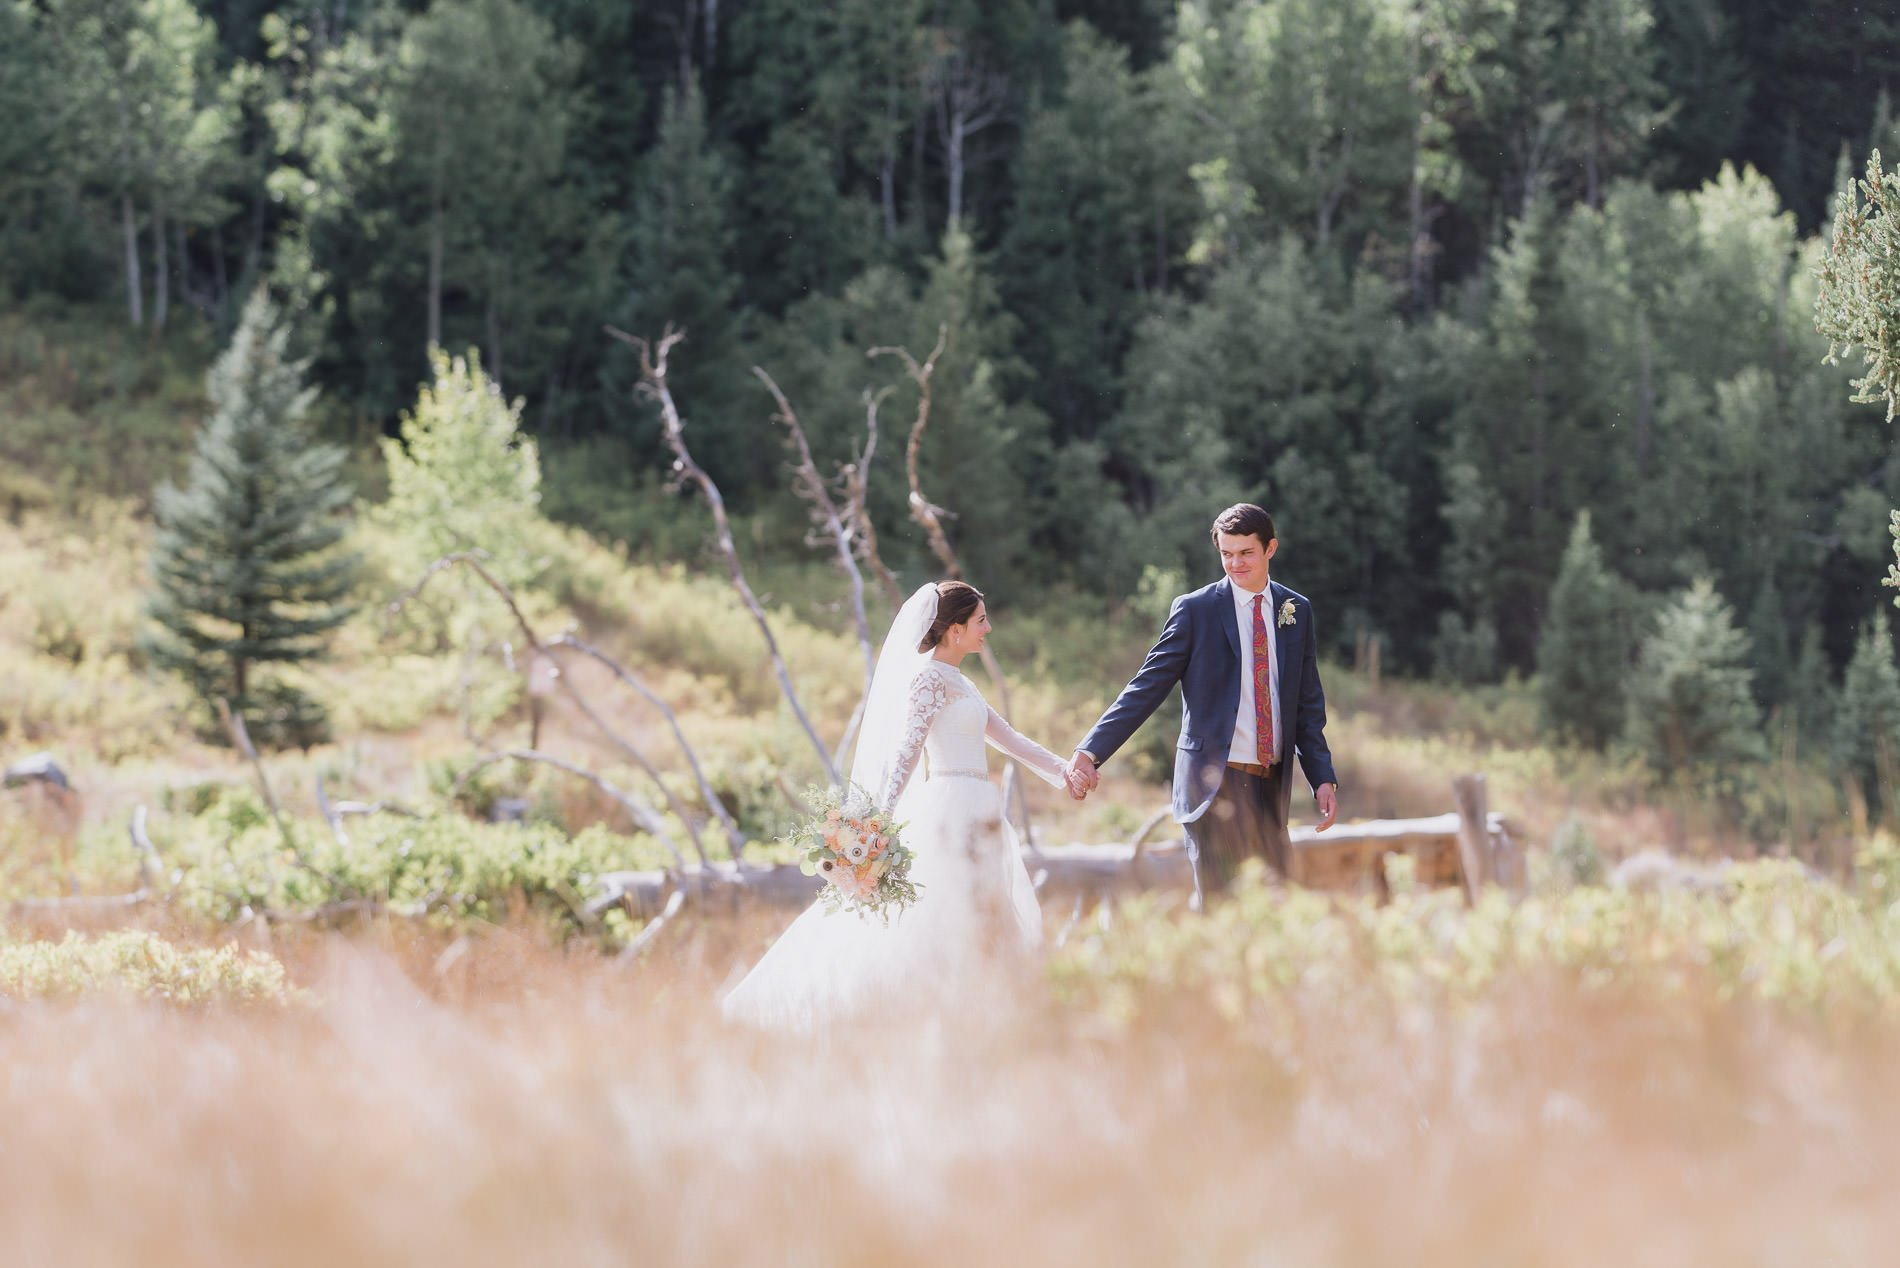 A groom leads a bride in the mountains for Utah bridal photography.